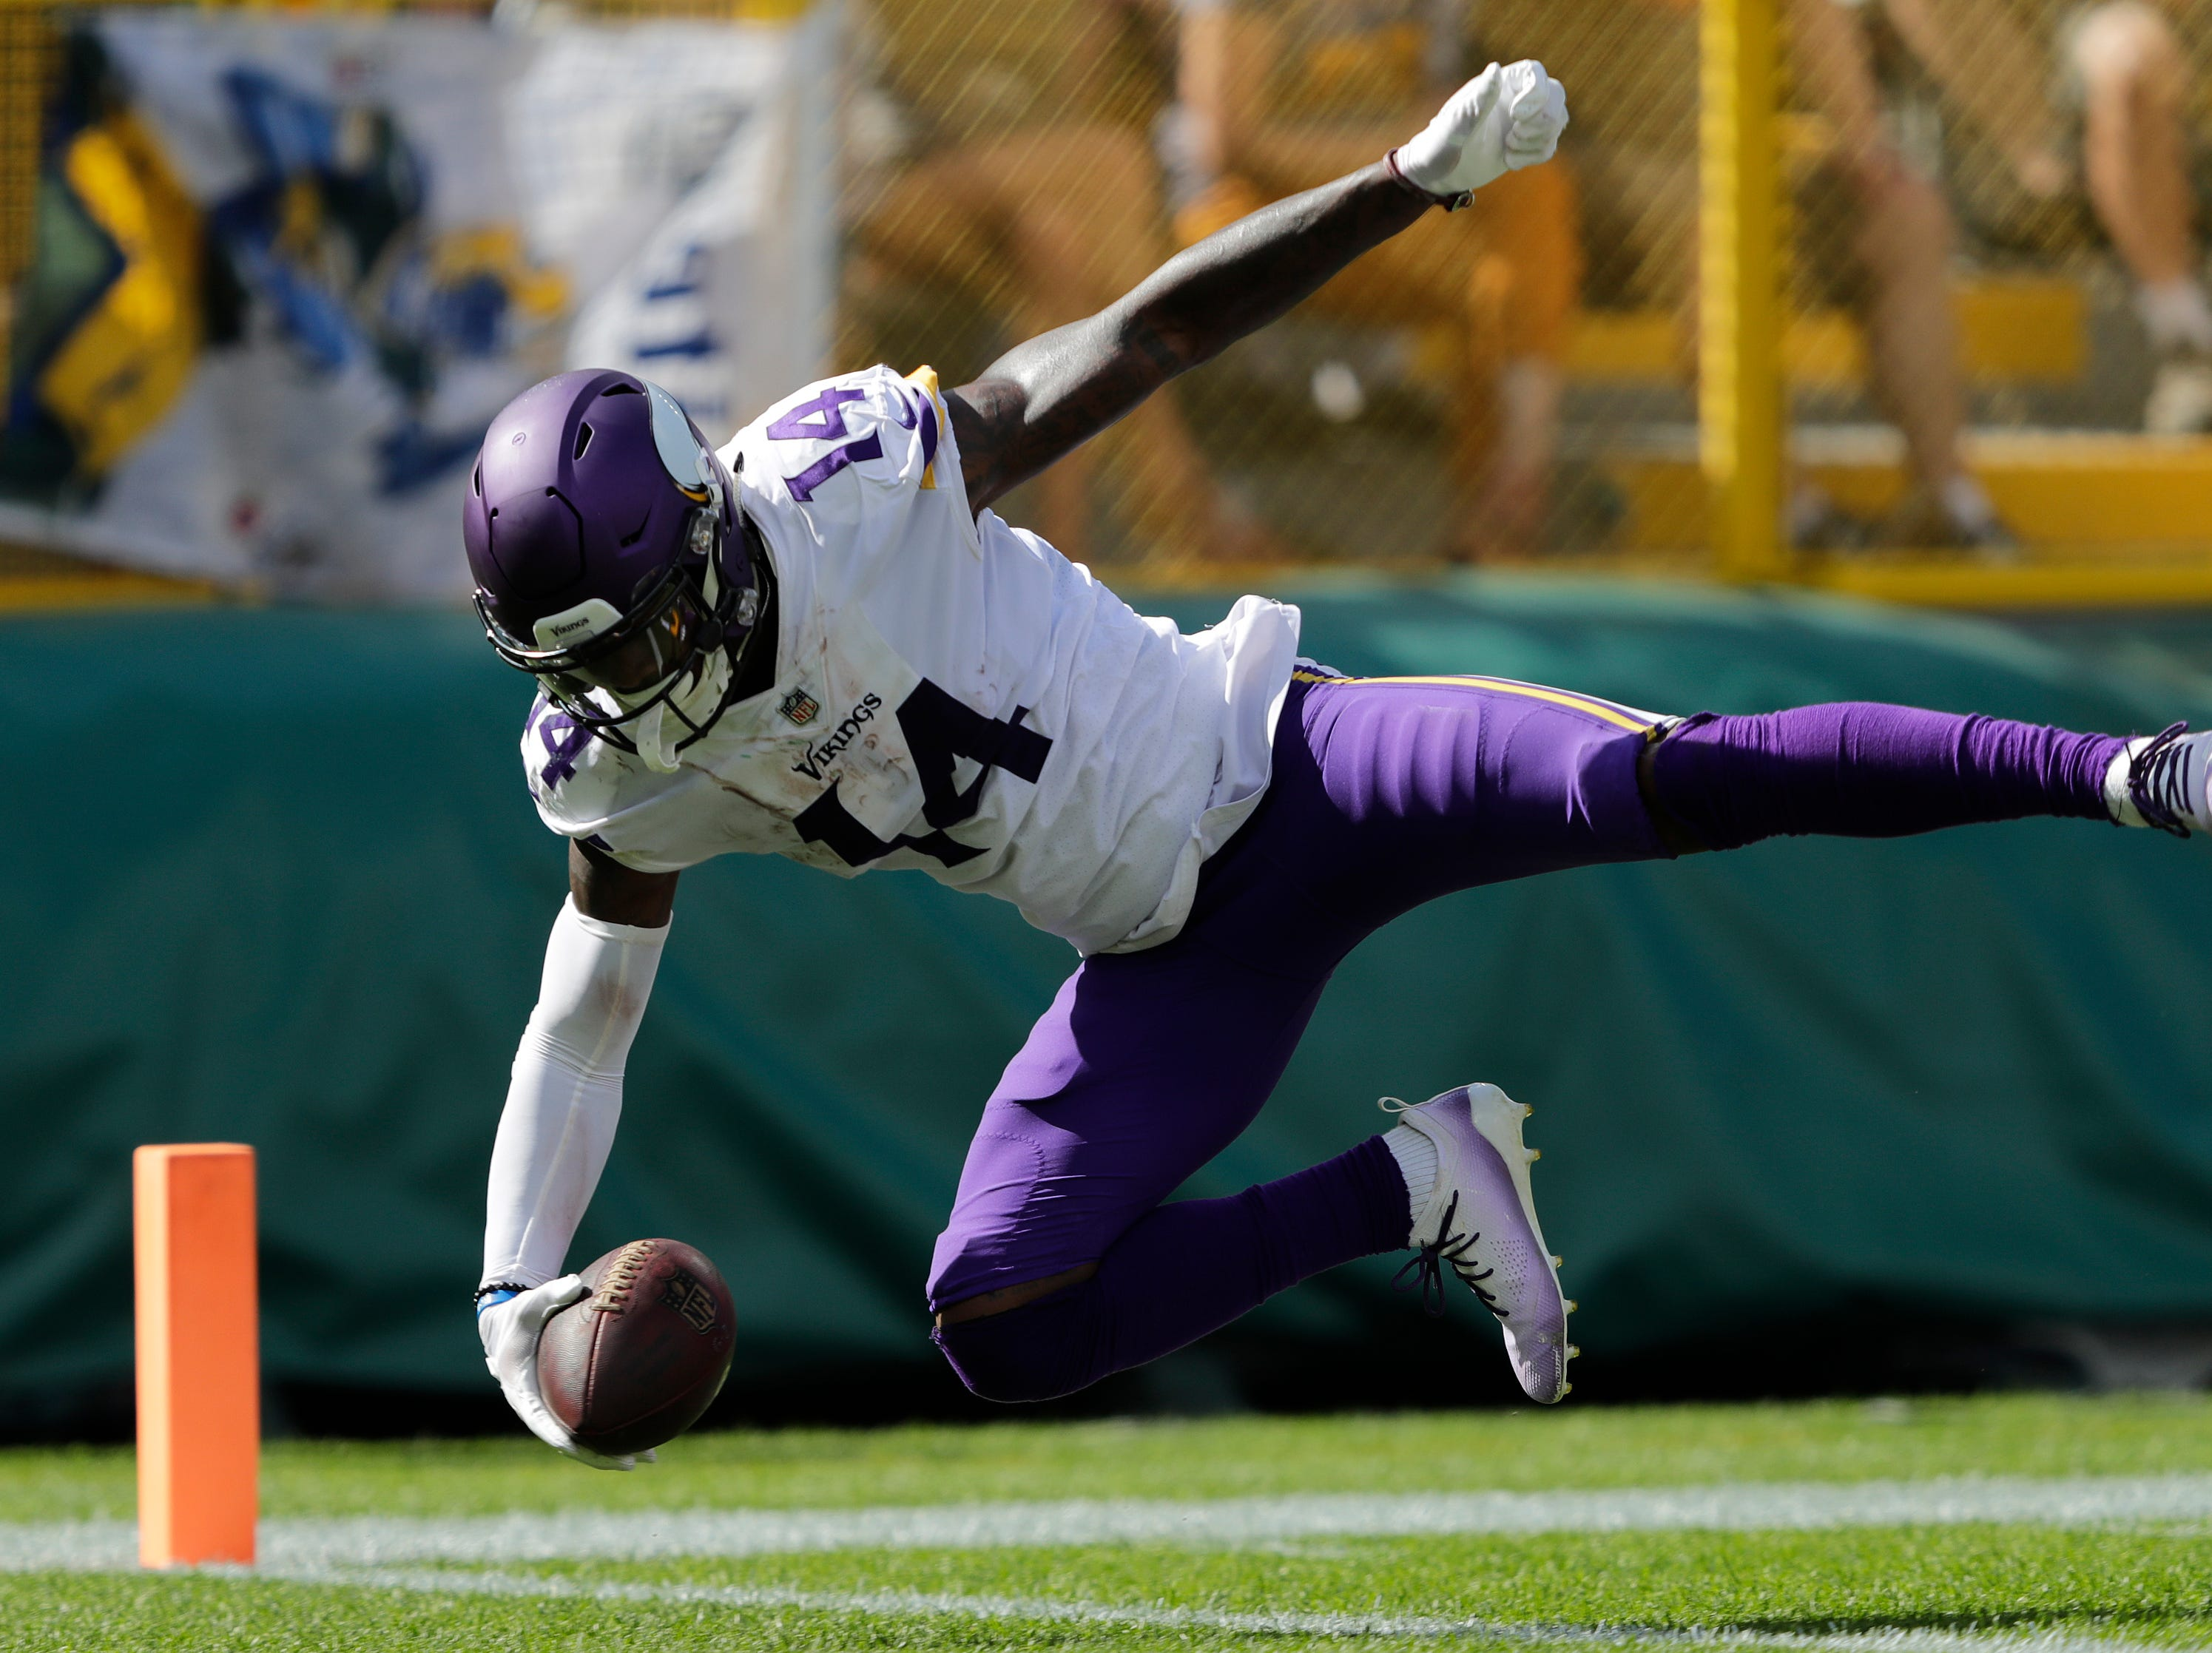 Minnesota Vikings wide receiver Stefon Diggs (14) dives into the end zone for a touchdown reception against the Green Bay Packers in the third quarter during their football game Sunday, Sept. 16, 2018, at Lambeau Field in Green Bay, Wis. Dan Powers/USA TODAY NETWORK-Wisconsin